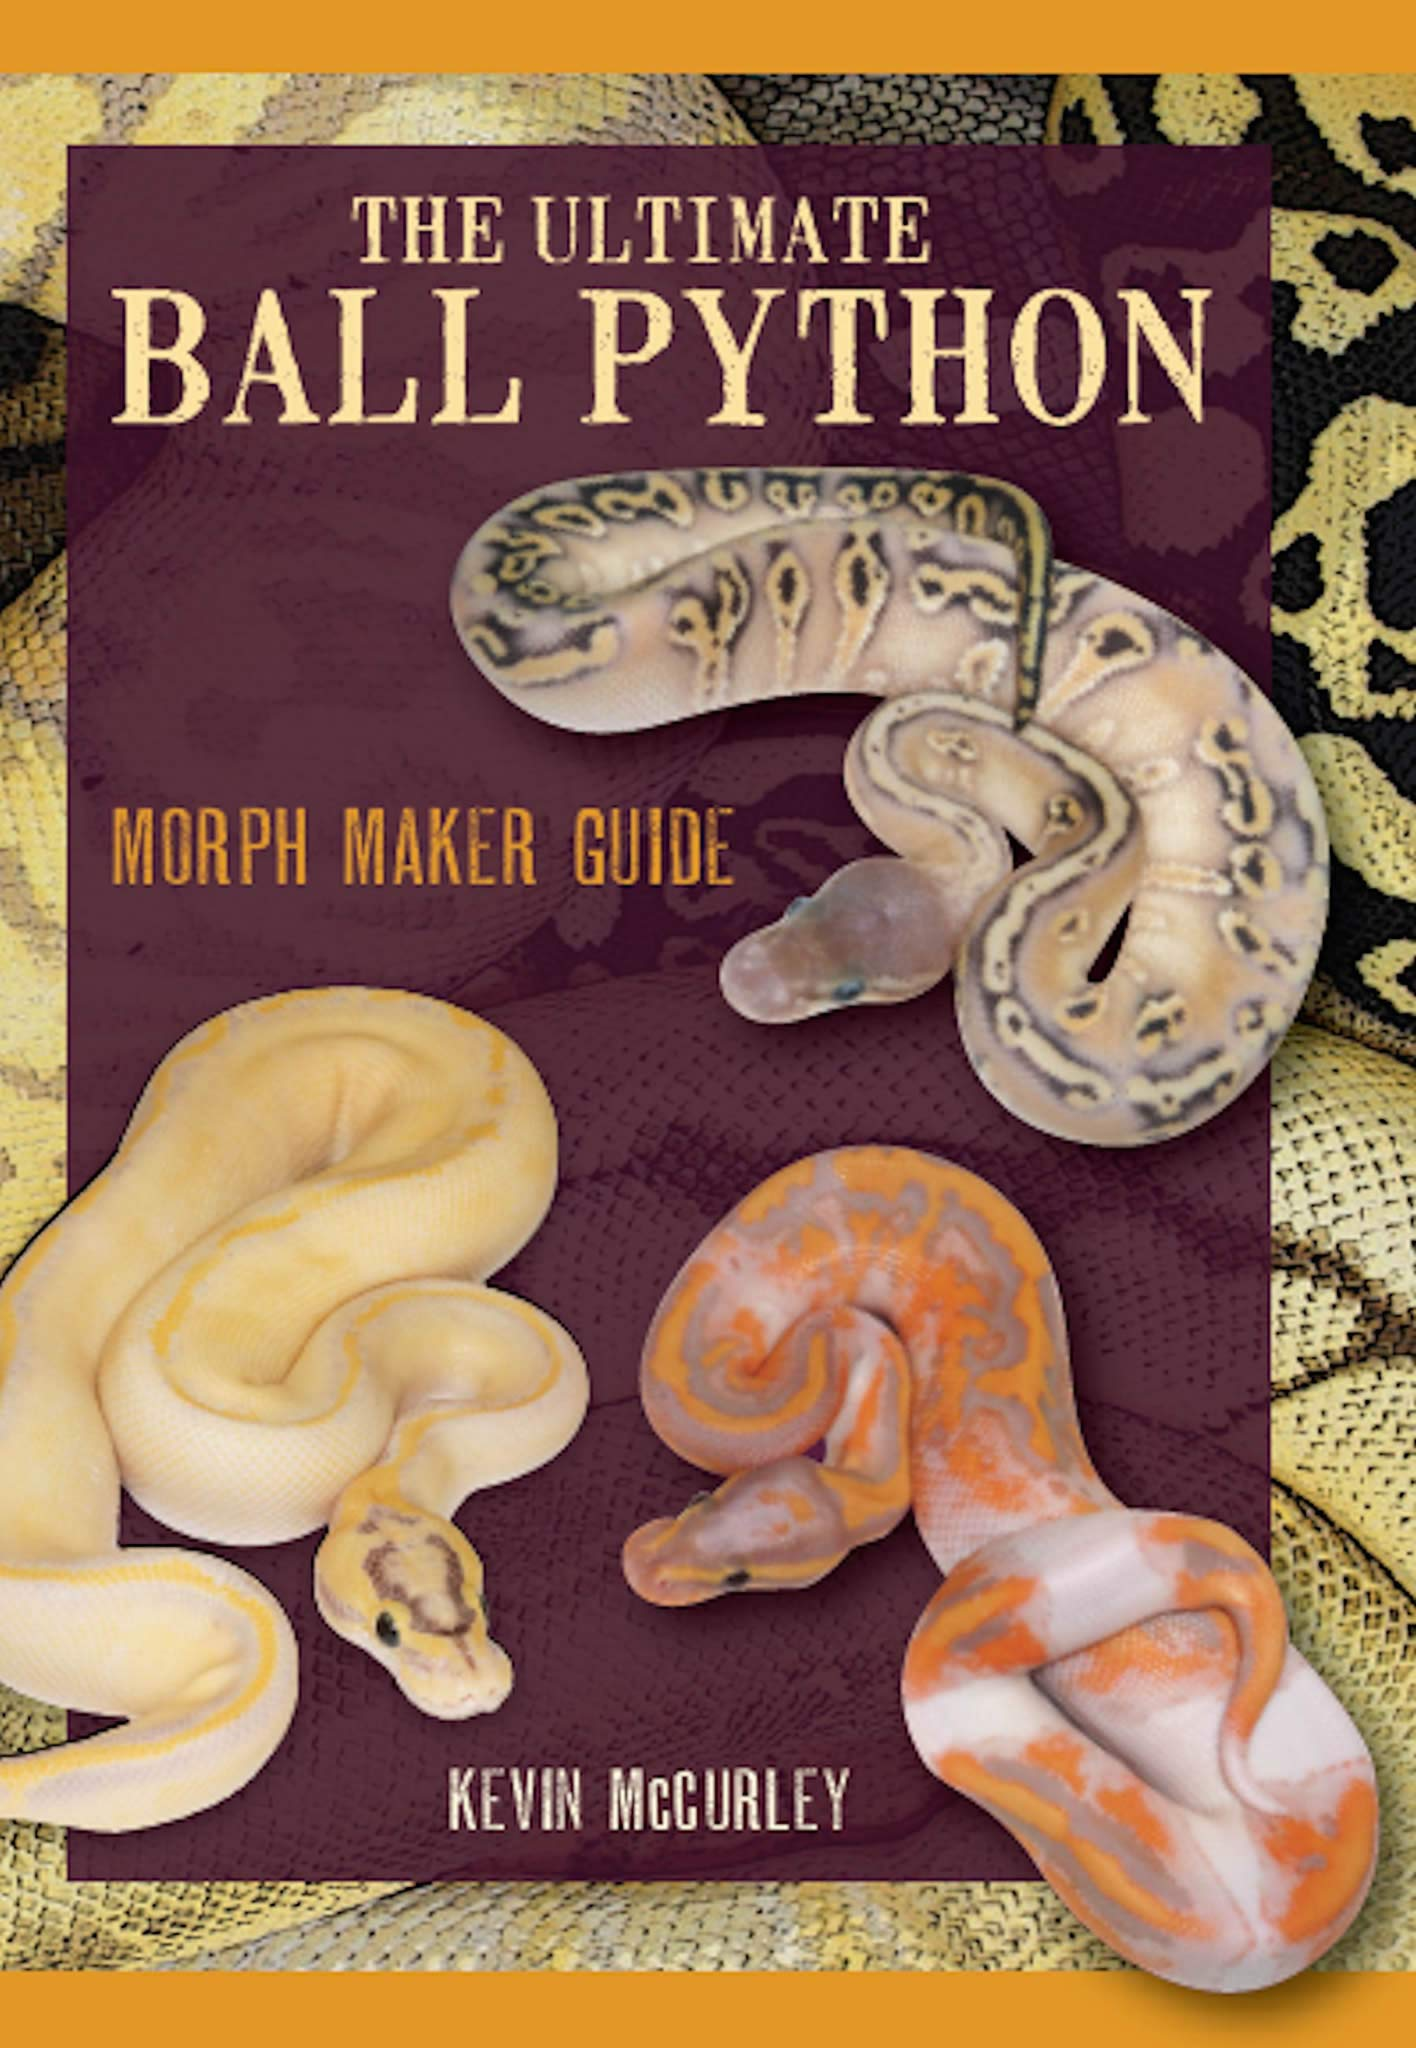 The Ultimate Ball Python: Morph Maker Guide by Kevin